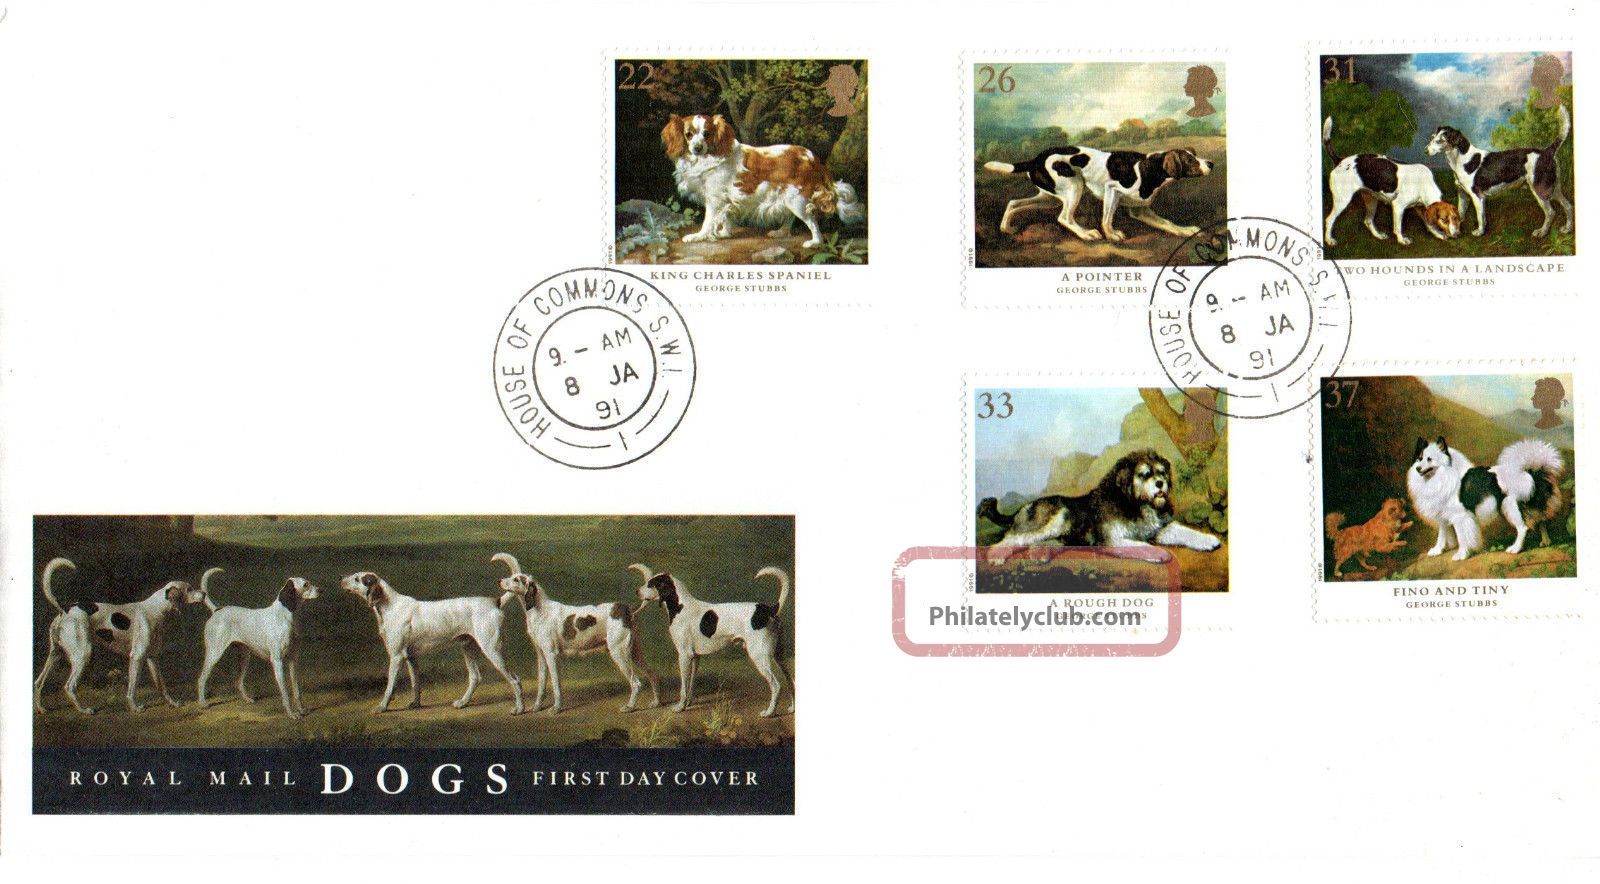 8 January 1991 Dogs Crufts Anniversary Rm First Day Cover House Of Commons Sw1 Animal Kingdom photo